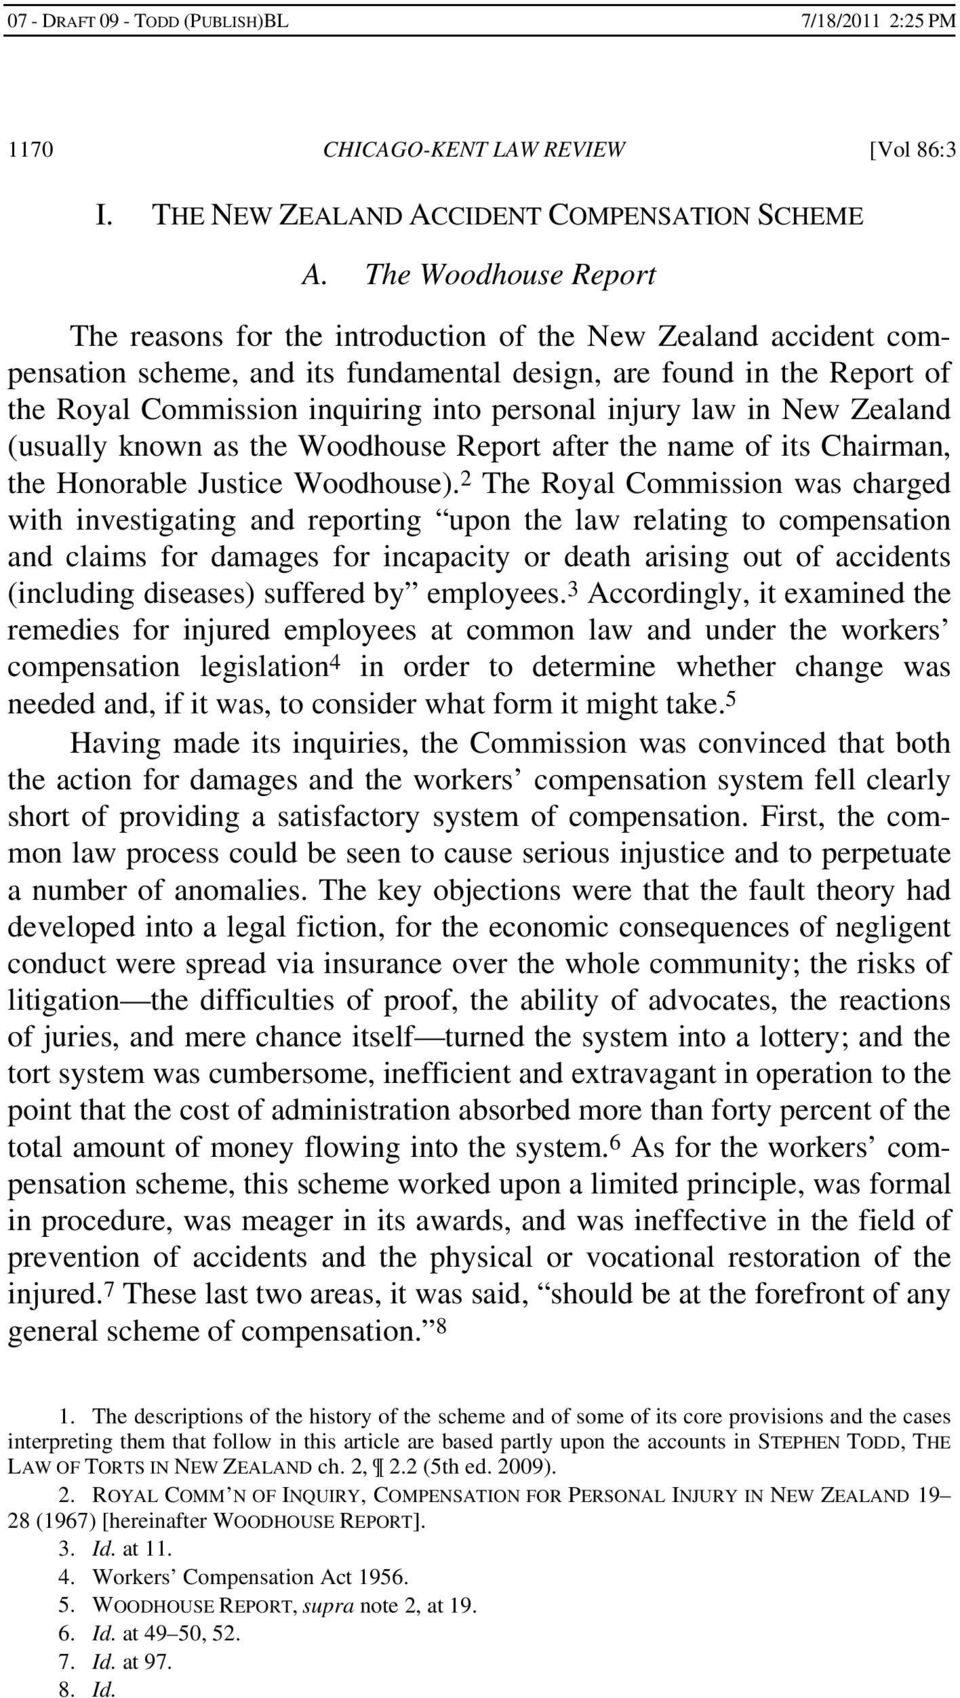 personal injury law in New Zealand (usually known as the Woodhouse Report after the name of its Chairman, the Honorable Justice Woodhouse).